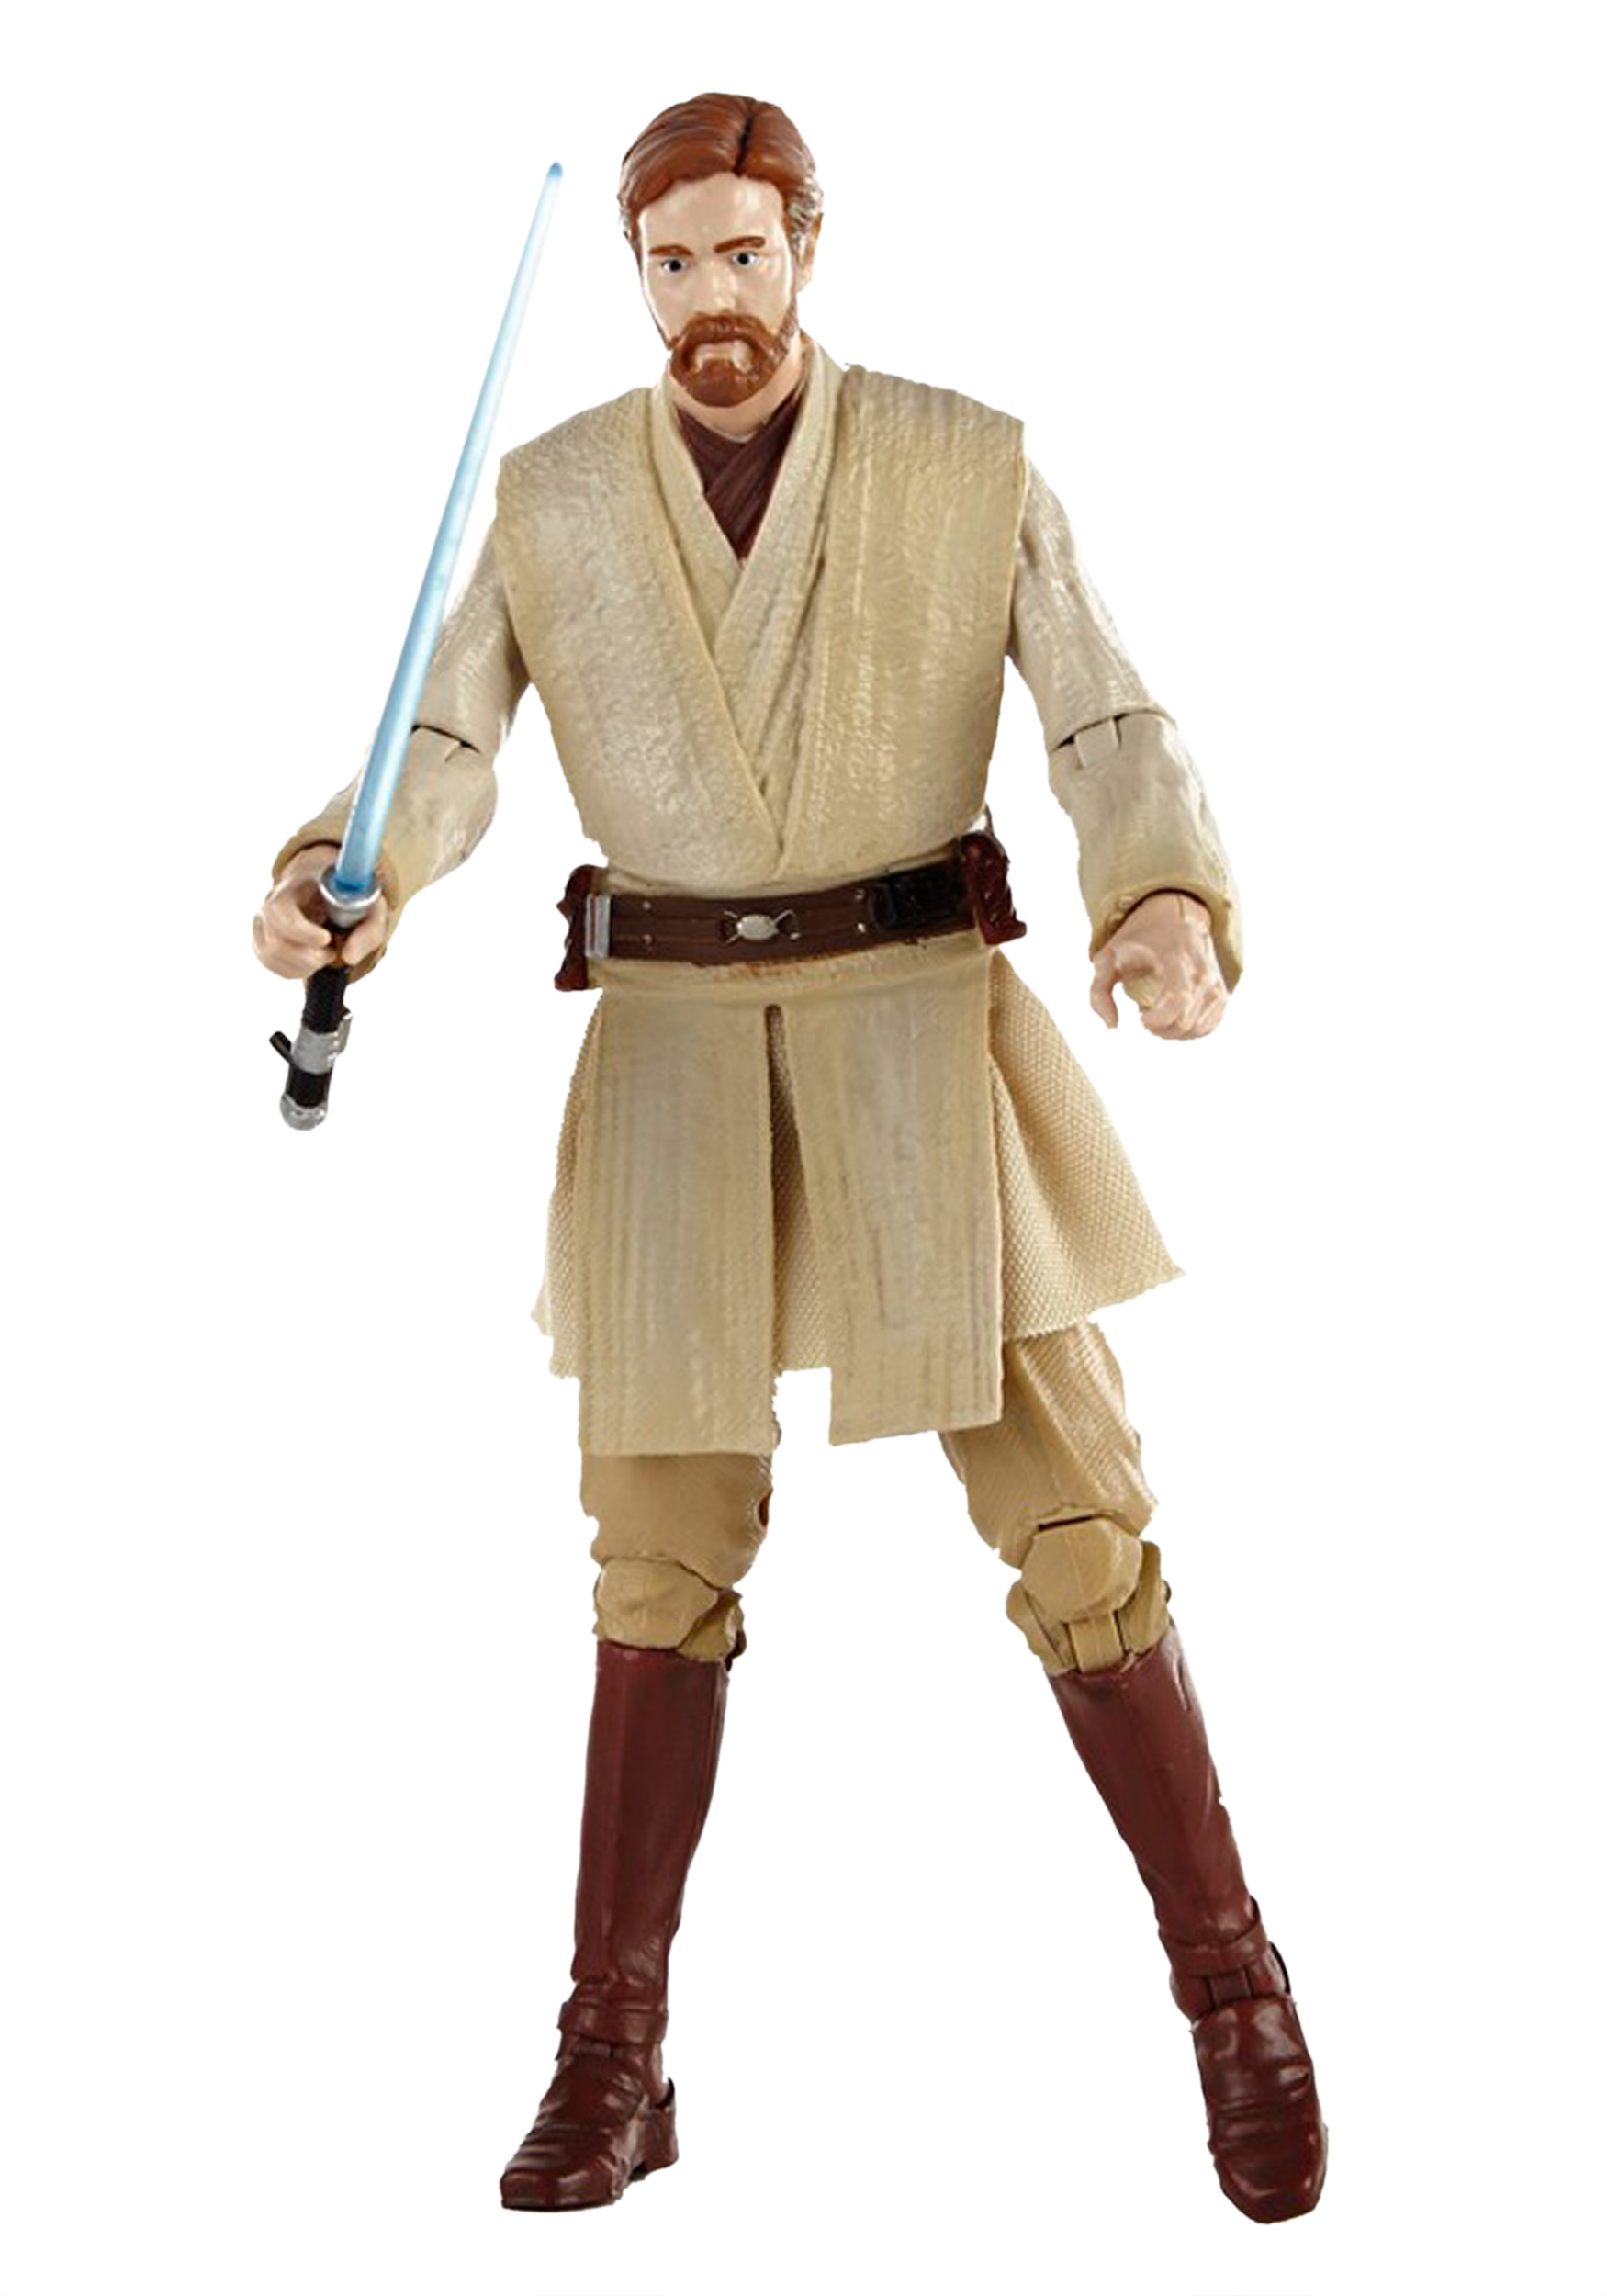 Obi-Wan Kenobi Black Series Action Figure EEA5627